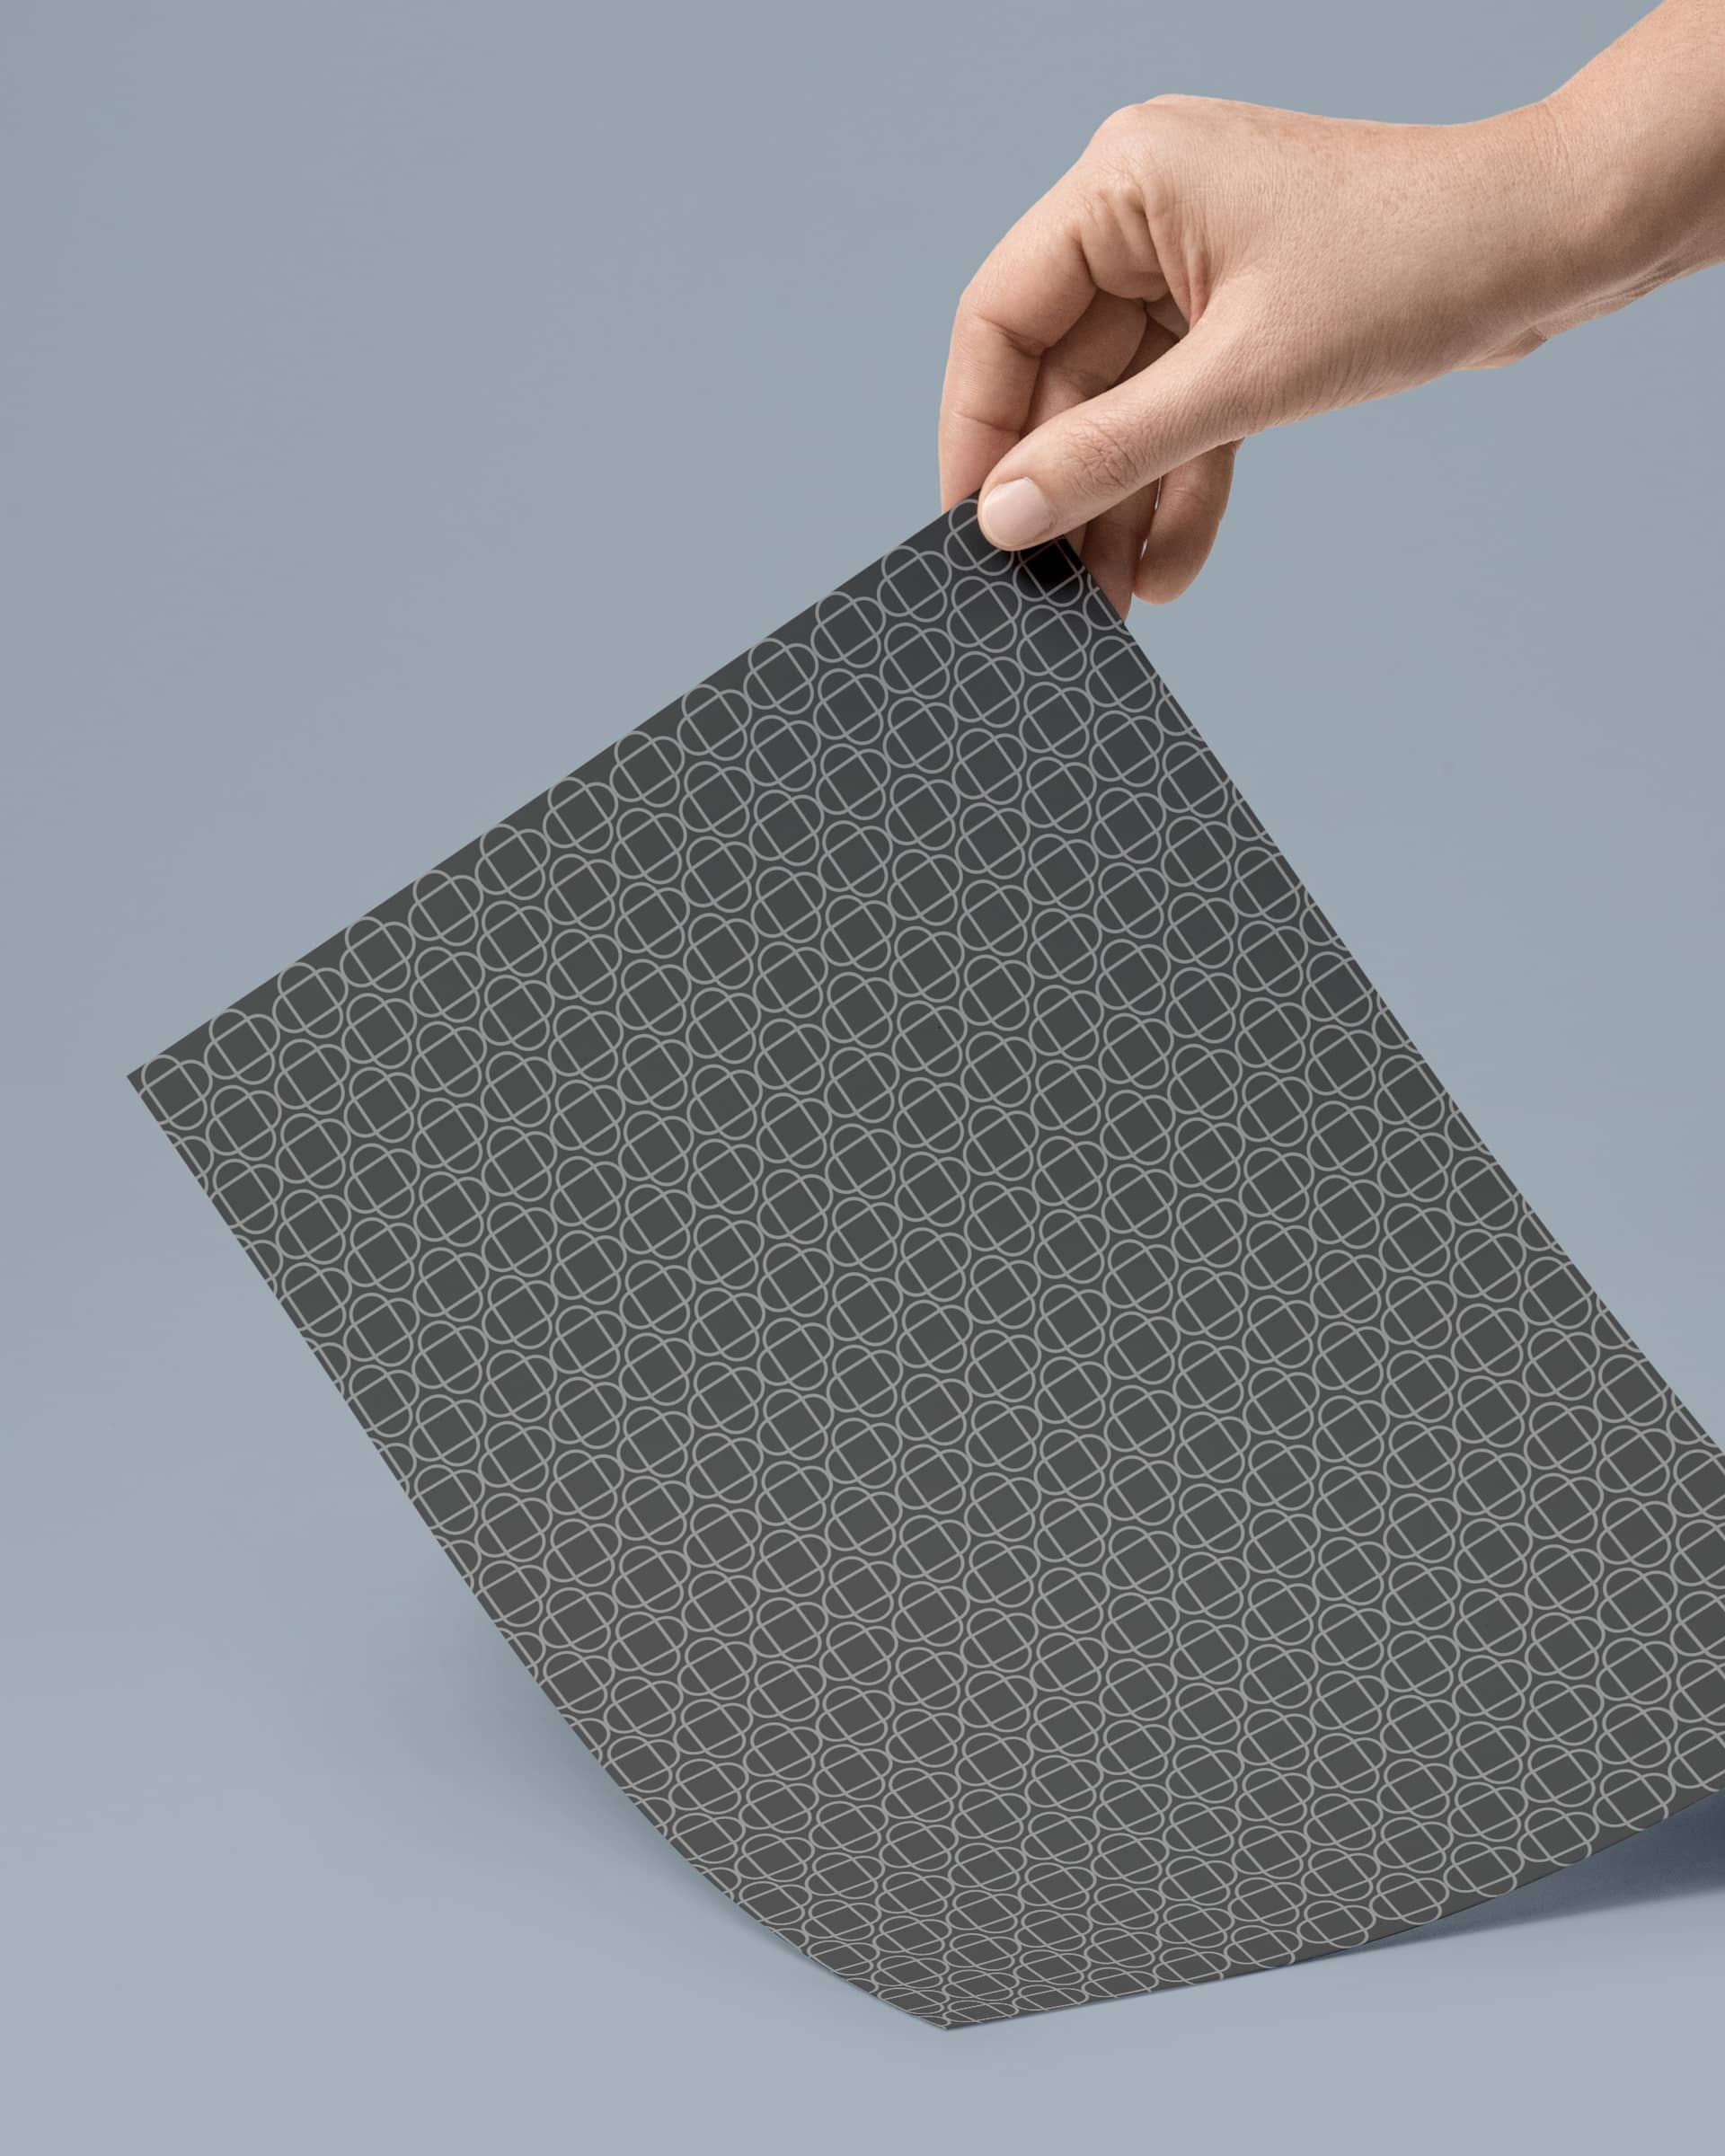 Dark grey geometrical pattern design printed on paper